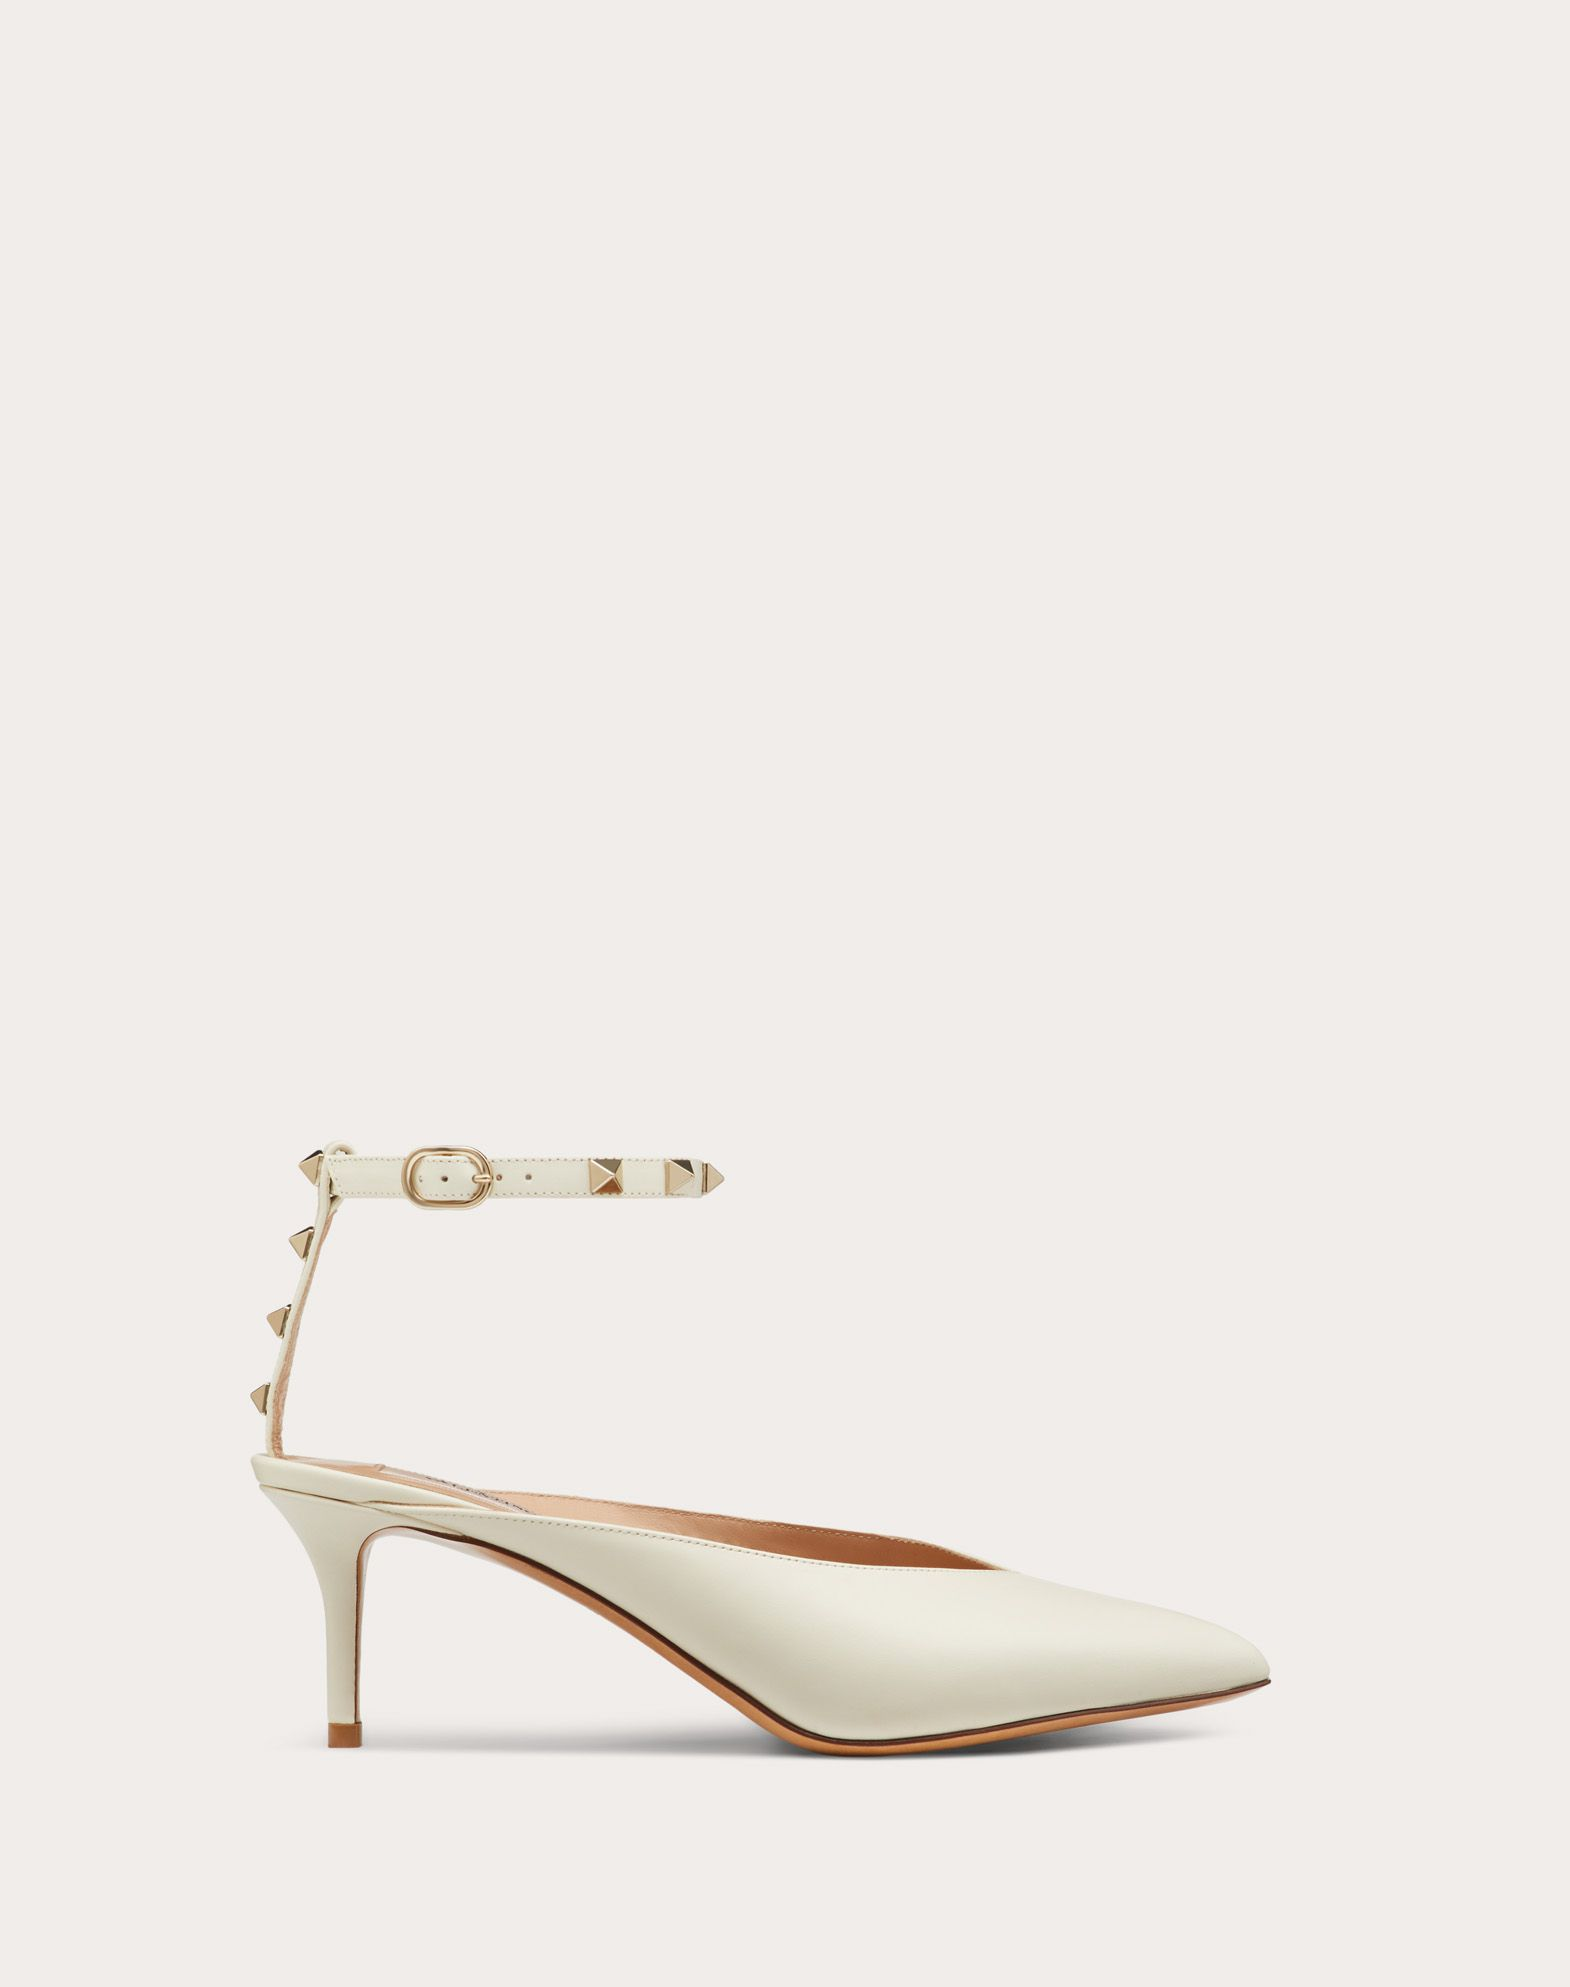 Rockstud Hype Calfskin Pump 60 mm